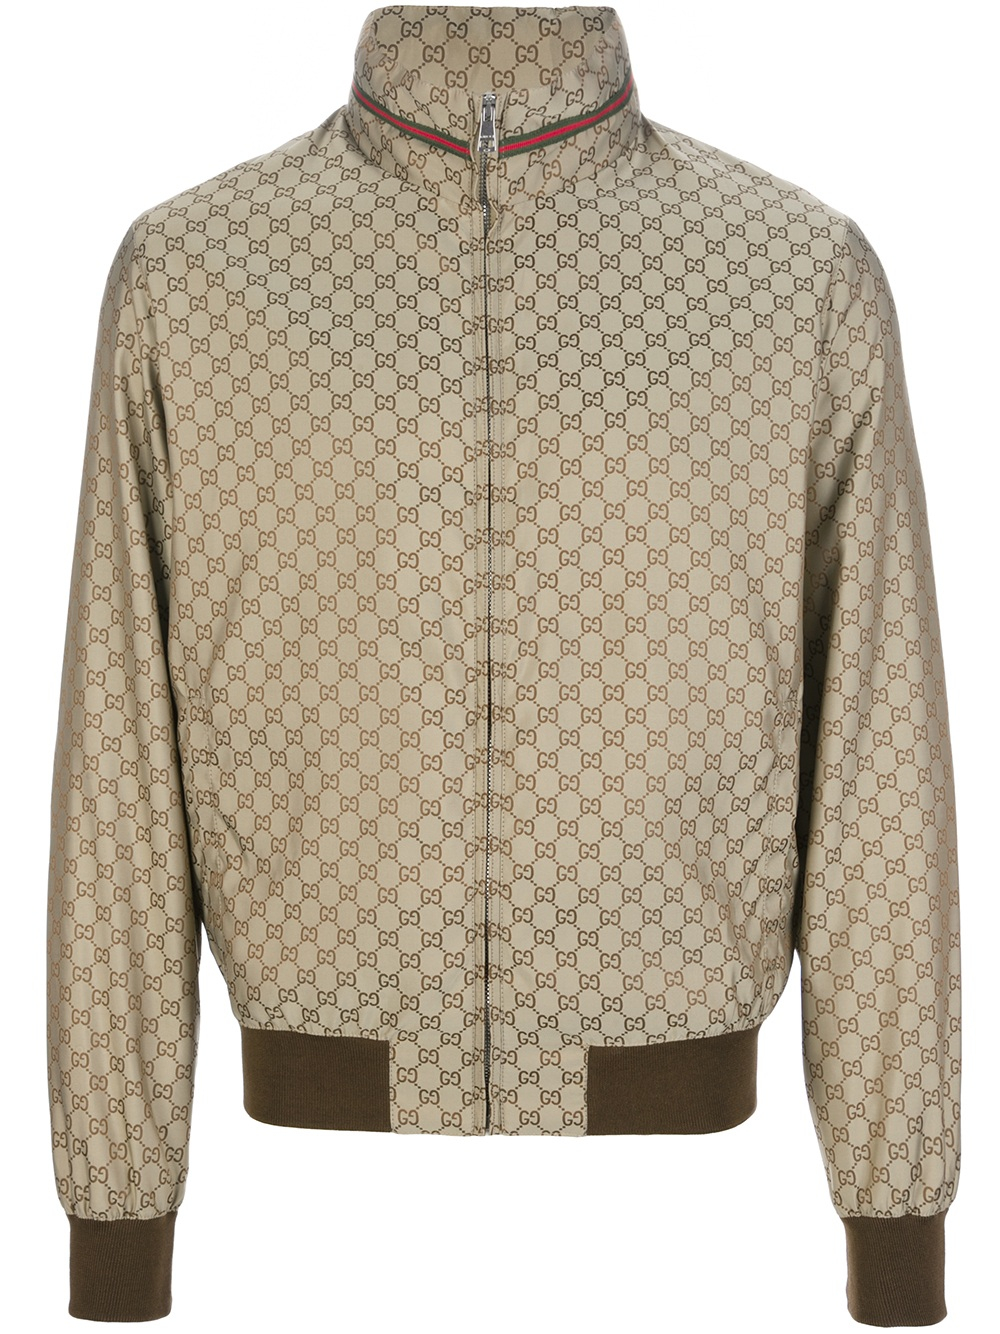 a84688e18 Gucci Logo Print Bomber Jacket in Metallic for Men - Lyst